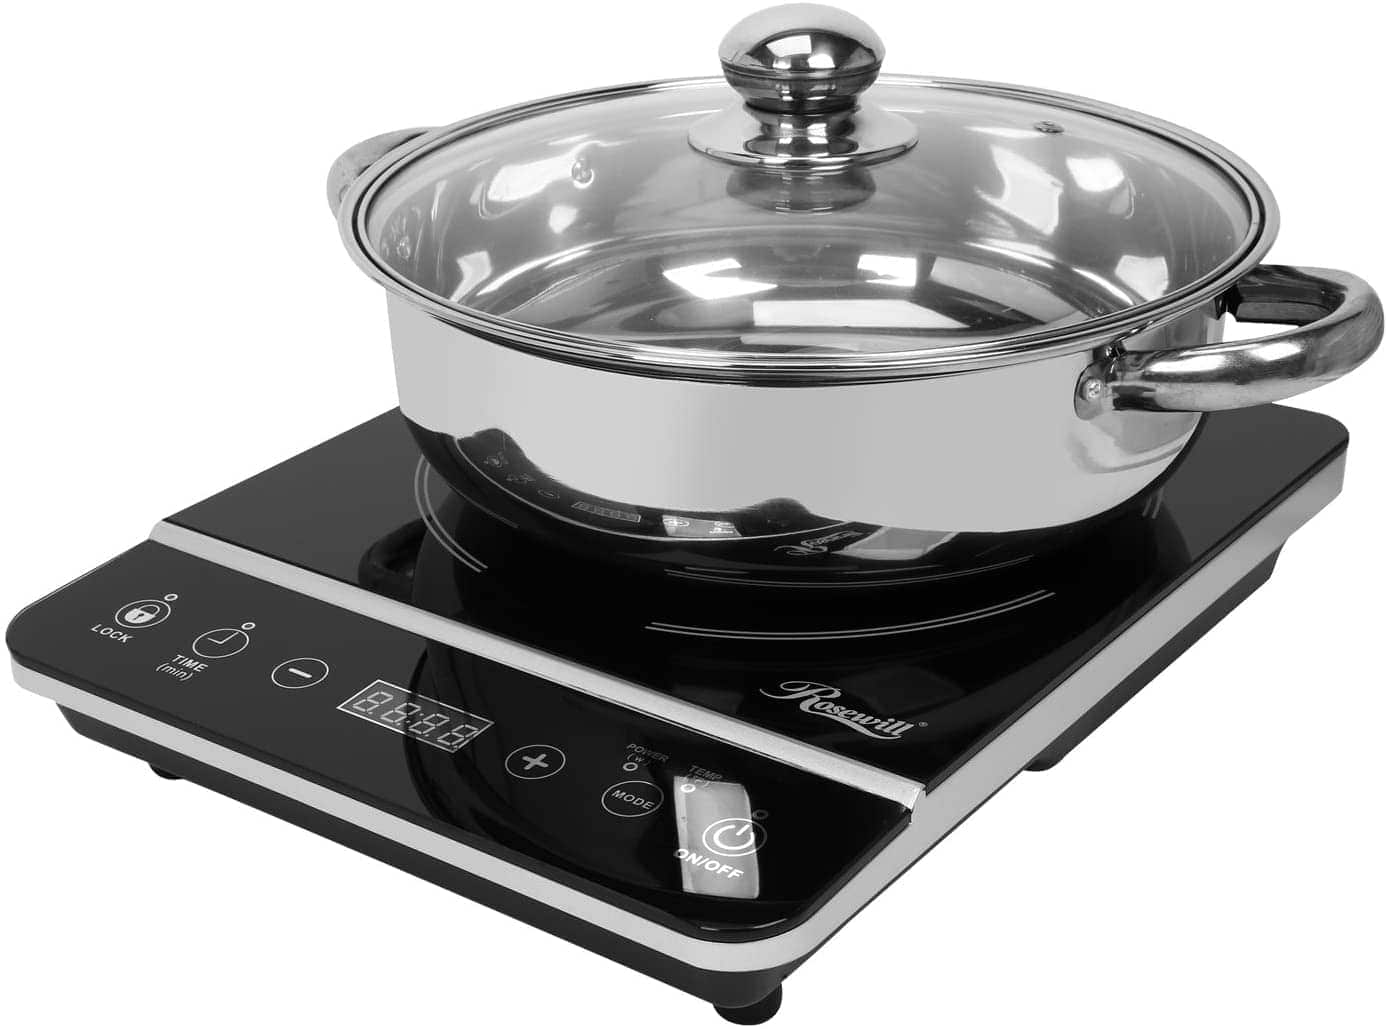 Rosewill 1800W Induction Cooktop with SS Pot $49.99 + FS